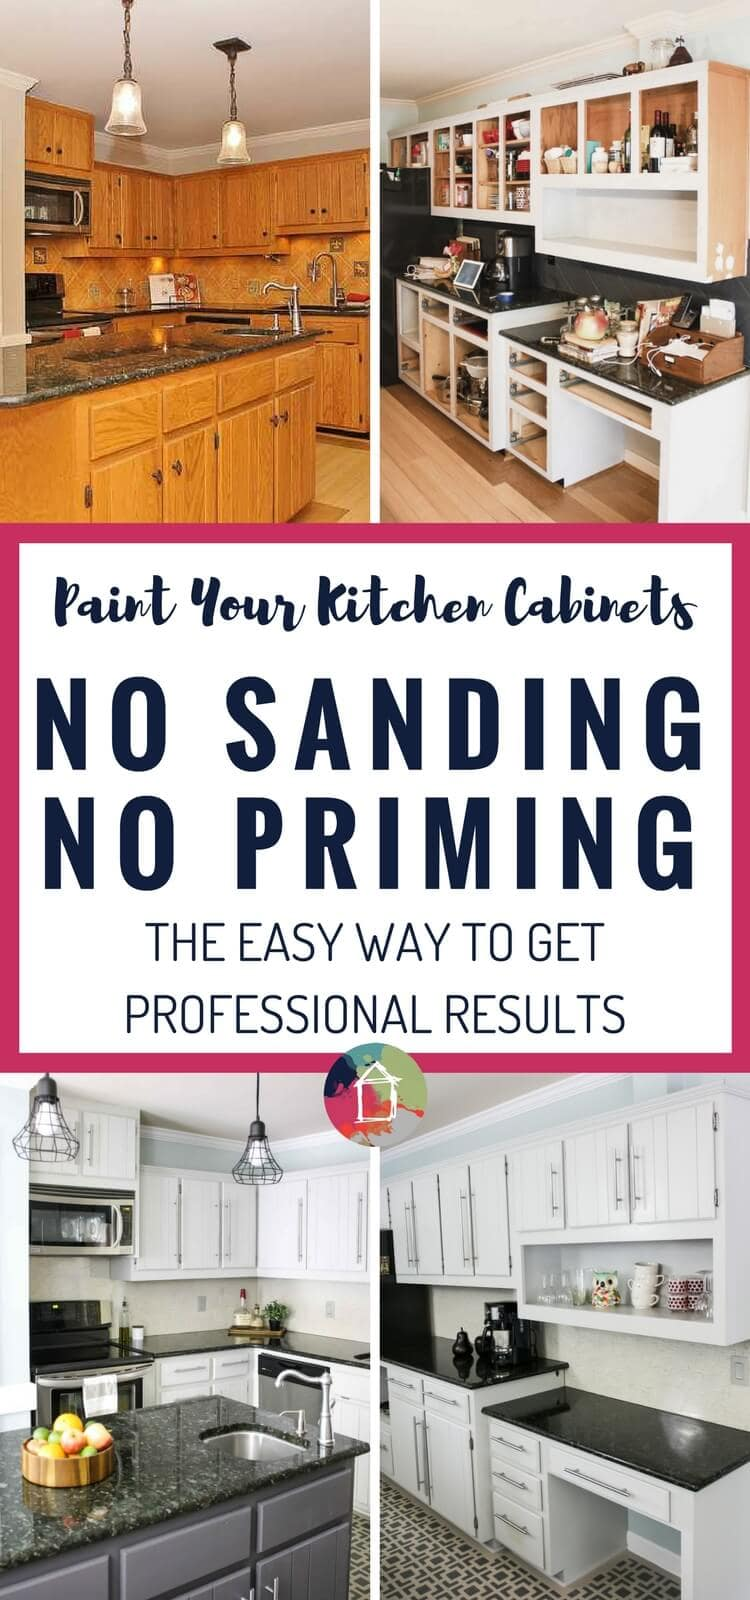 Best Paint For Kitchen Cabinets Without Sanding